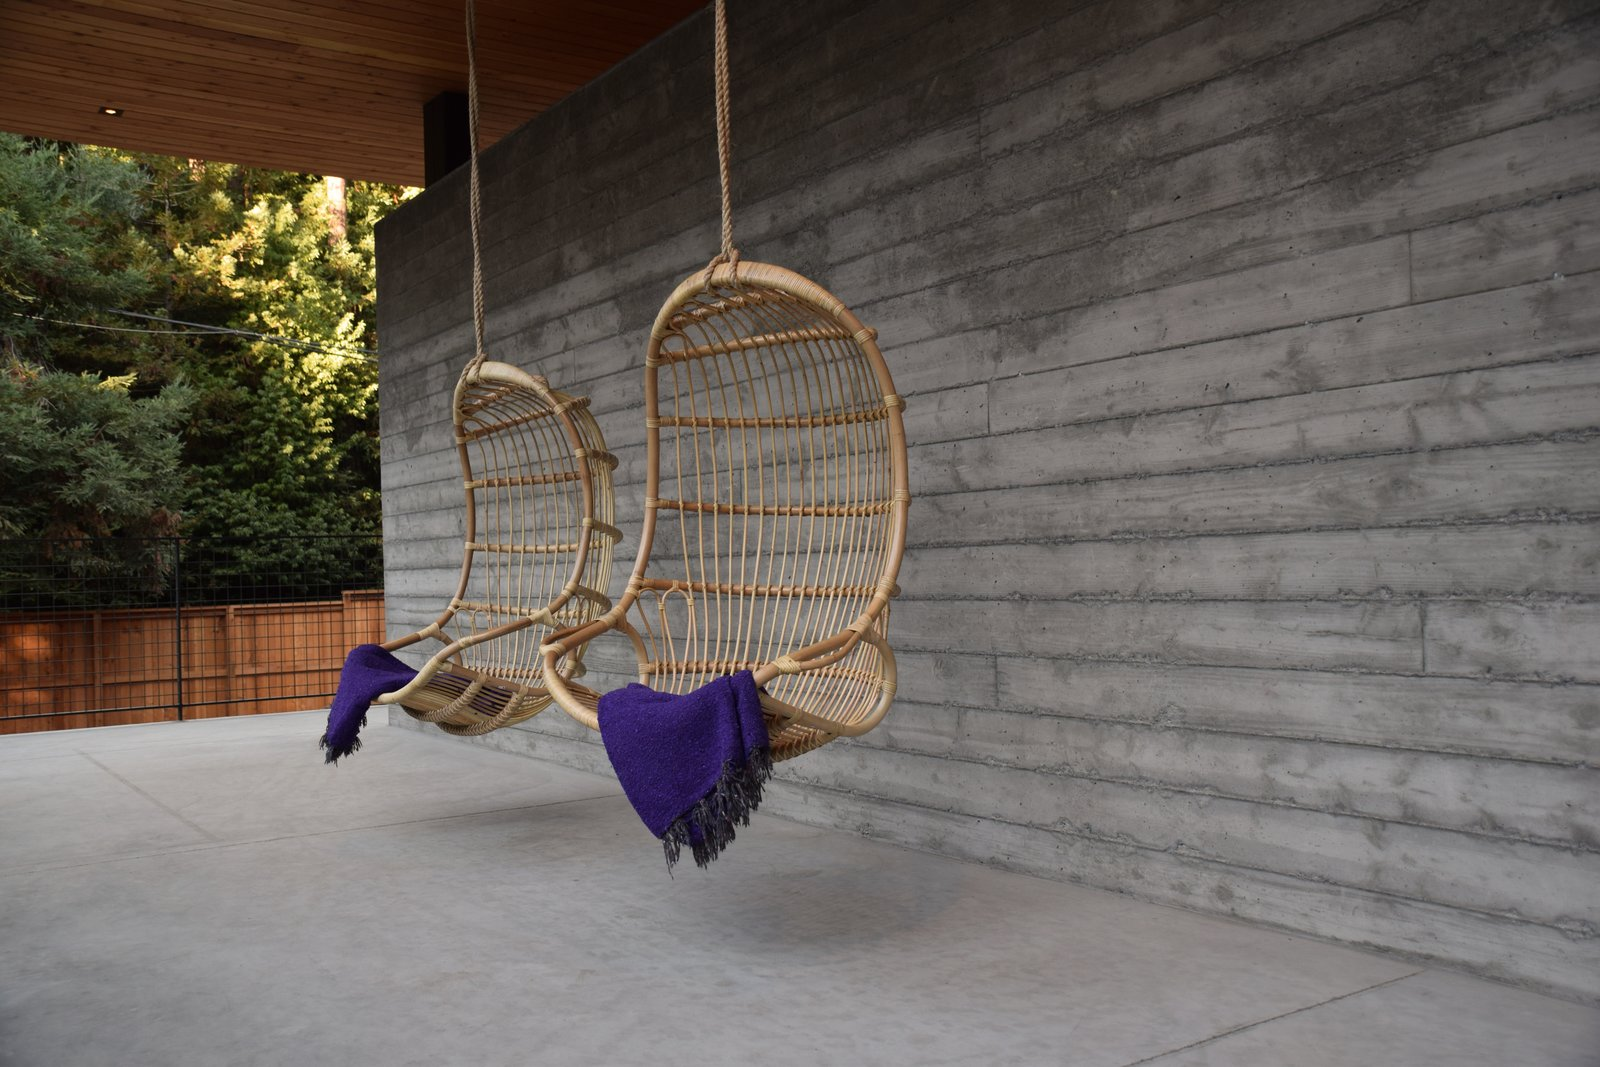 Hanging rattan chairs invite guests to curl up with a cup of tea and enjoy views of the meadow.